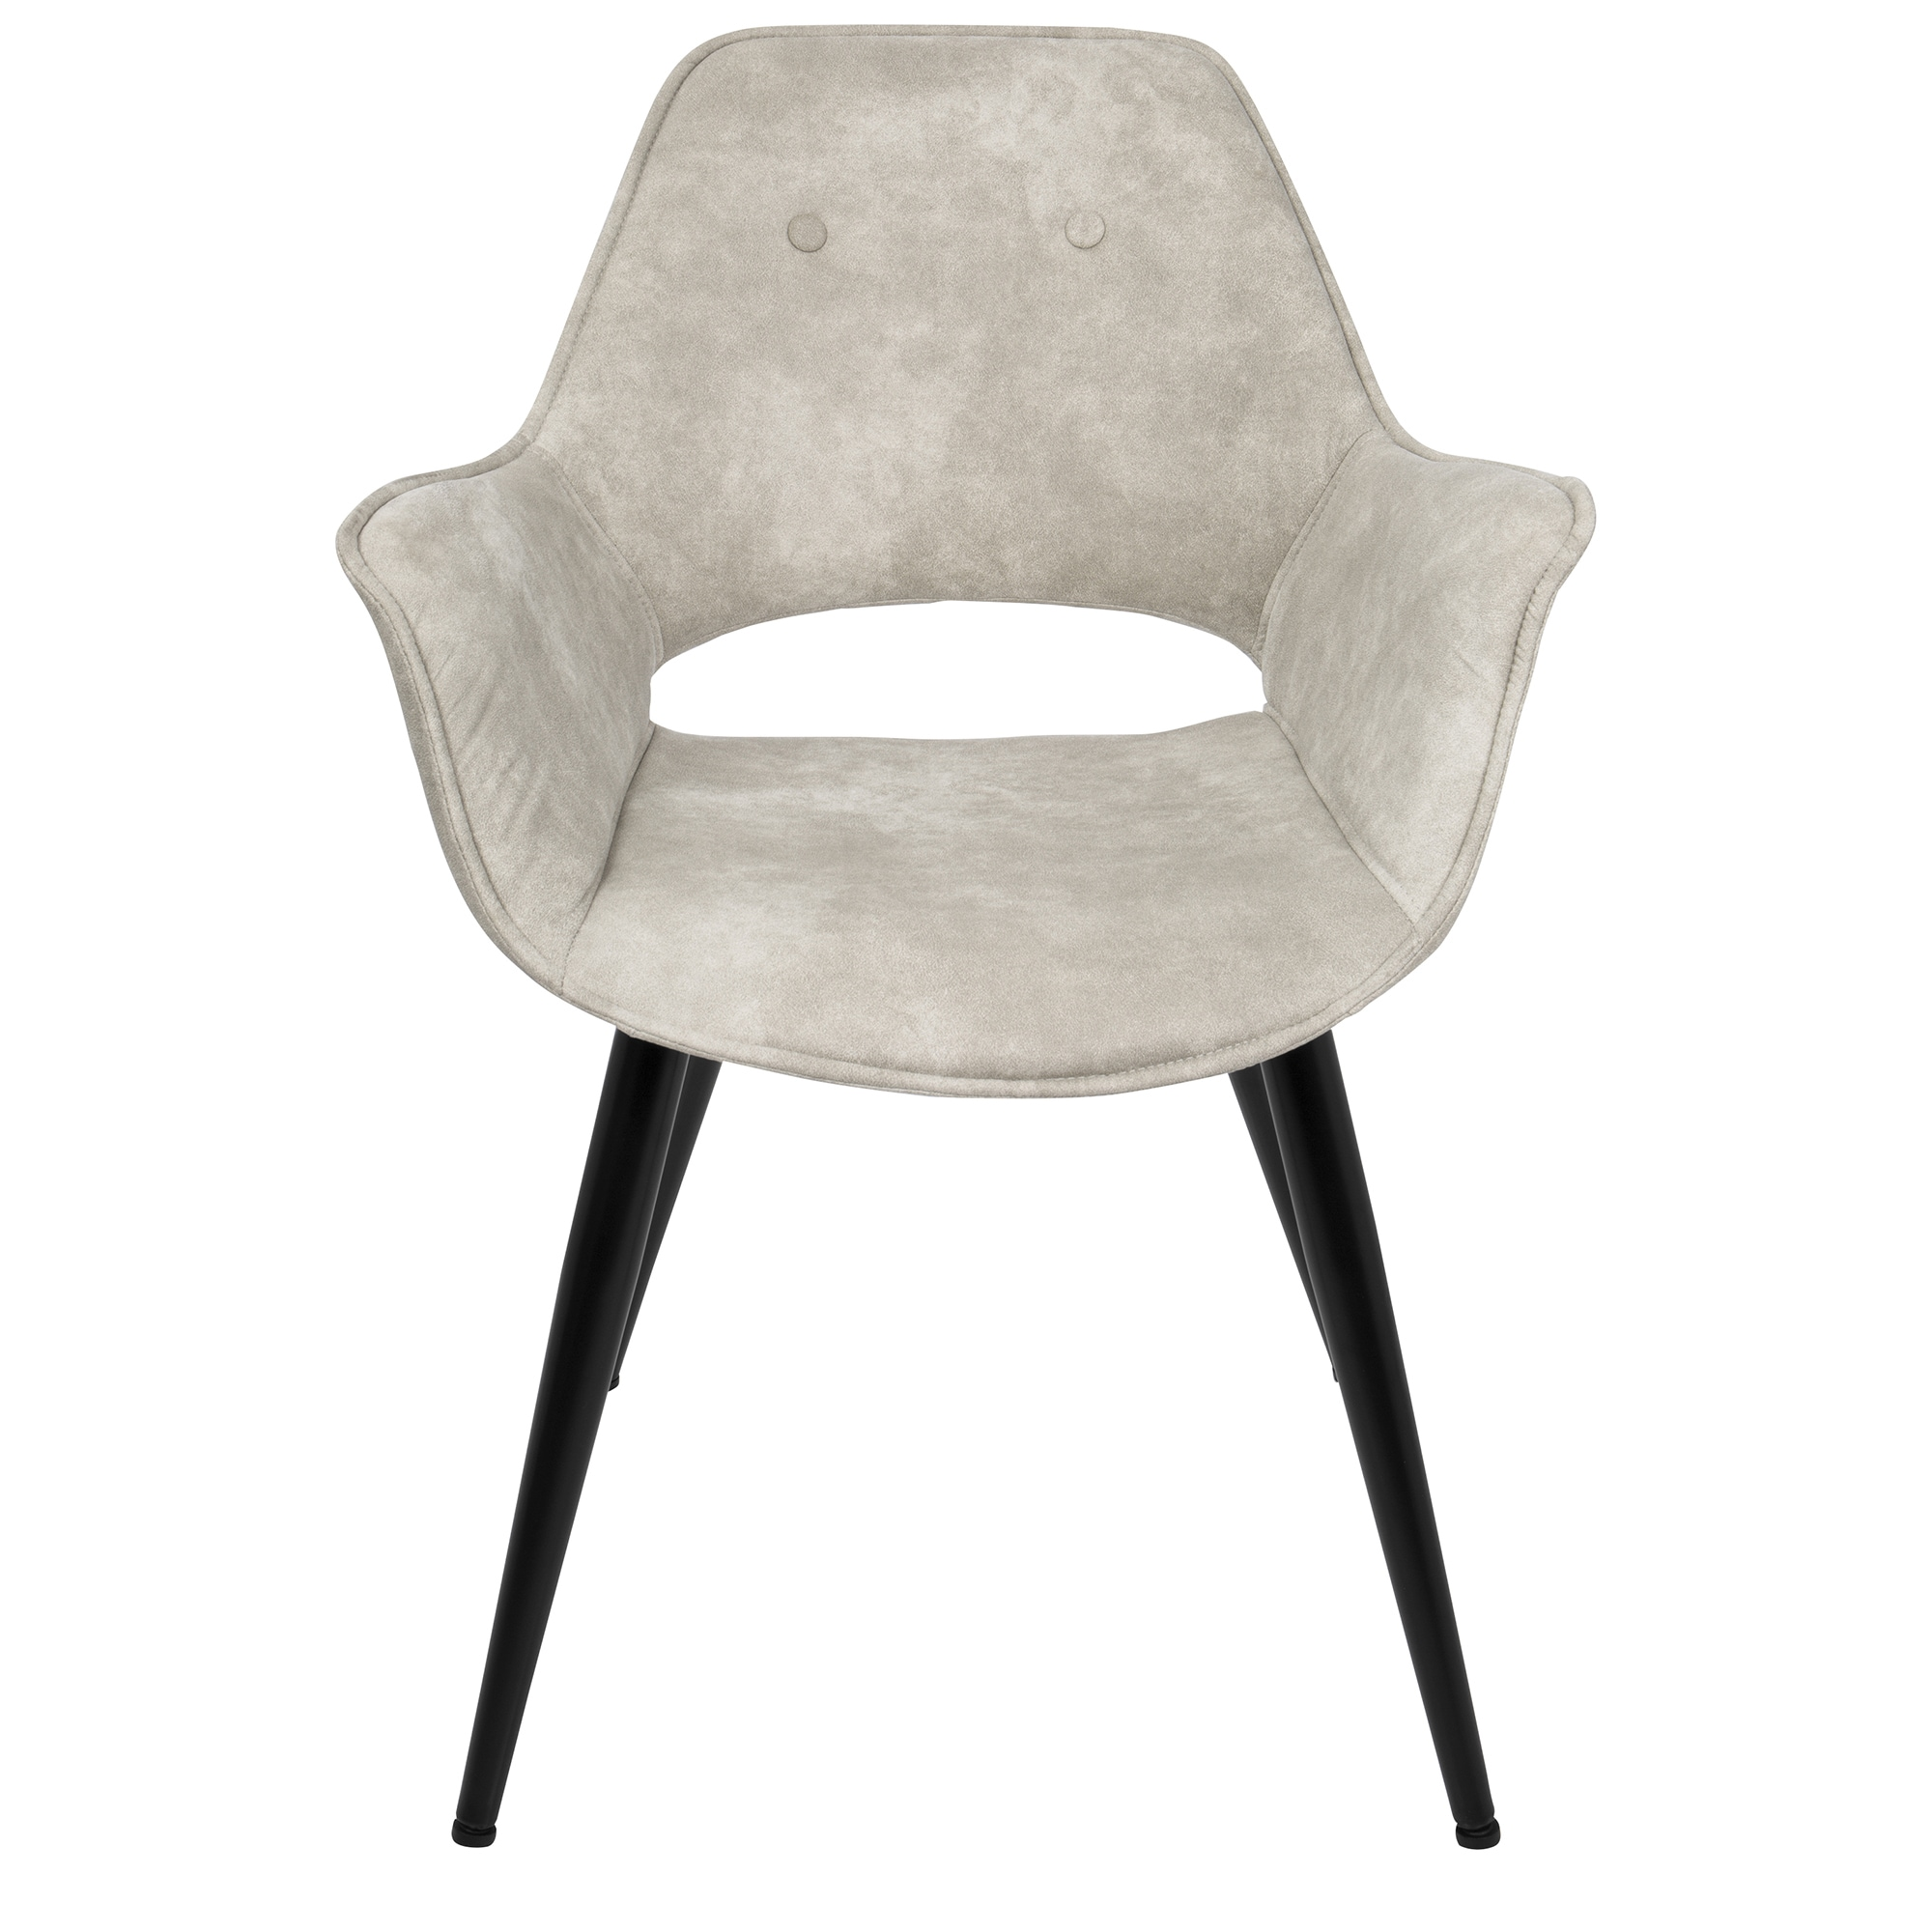 Shop LumiSource Mustang Contemporary Accent Chairs (Set of 2) - On Sale - Free Shipping Today - Overstock.com - 12853371  sc 1 st  Overstock.com & Shop LumiSource Mustang Contemporary Accent Chairs (Set of 2) - On ...